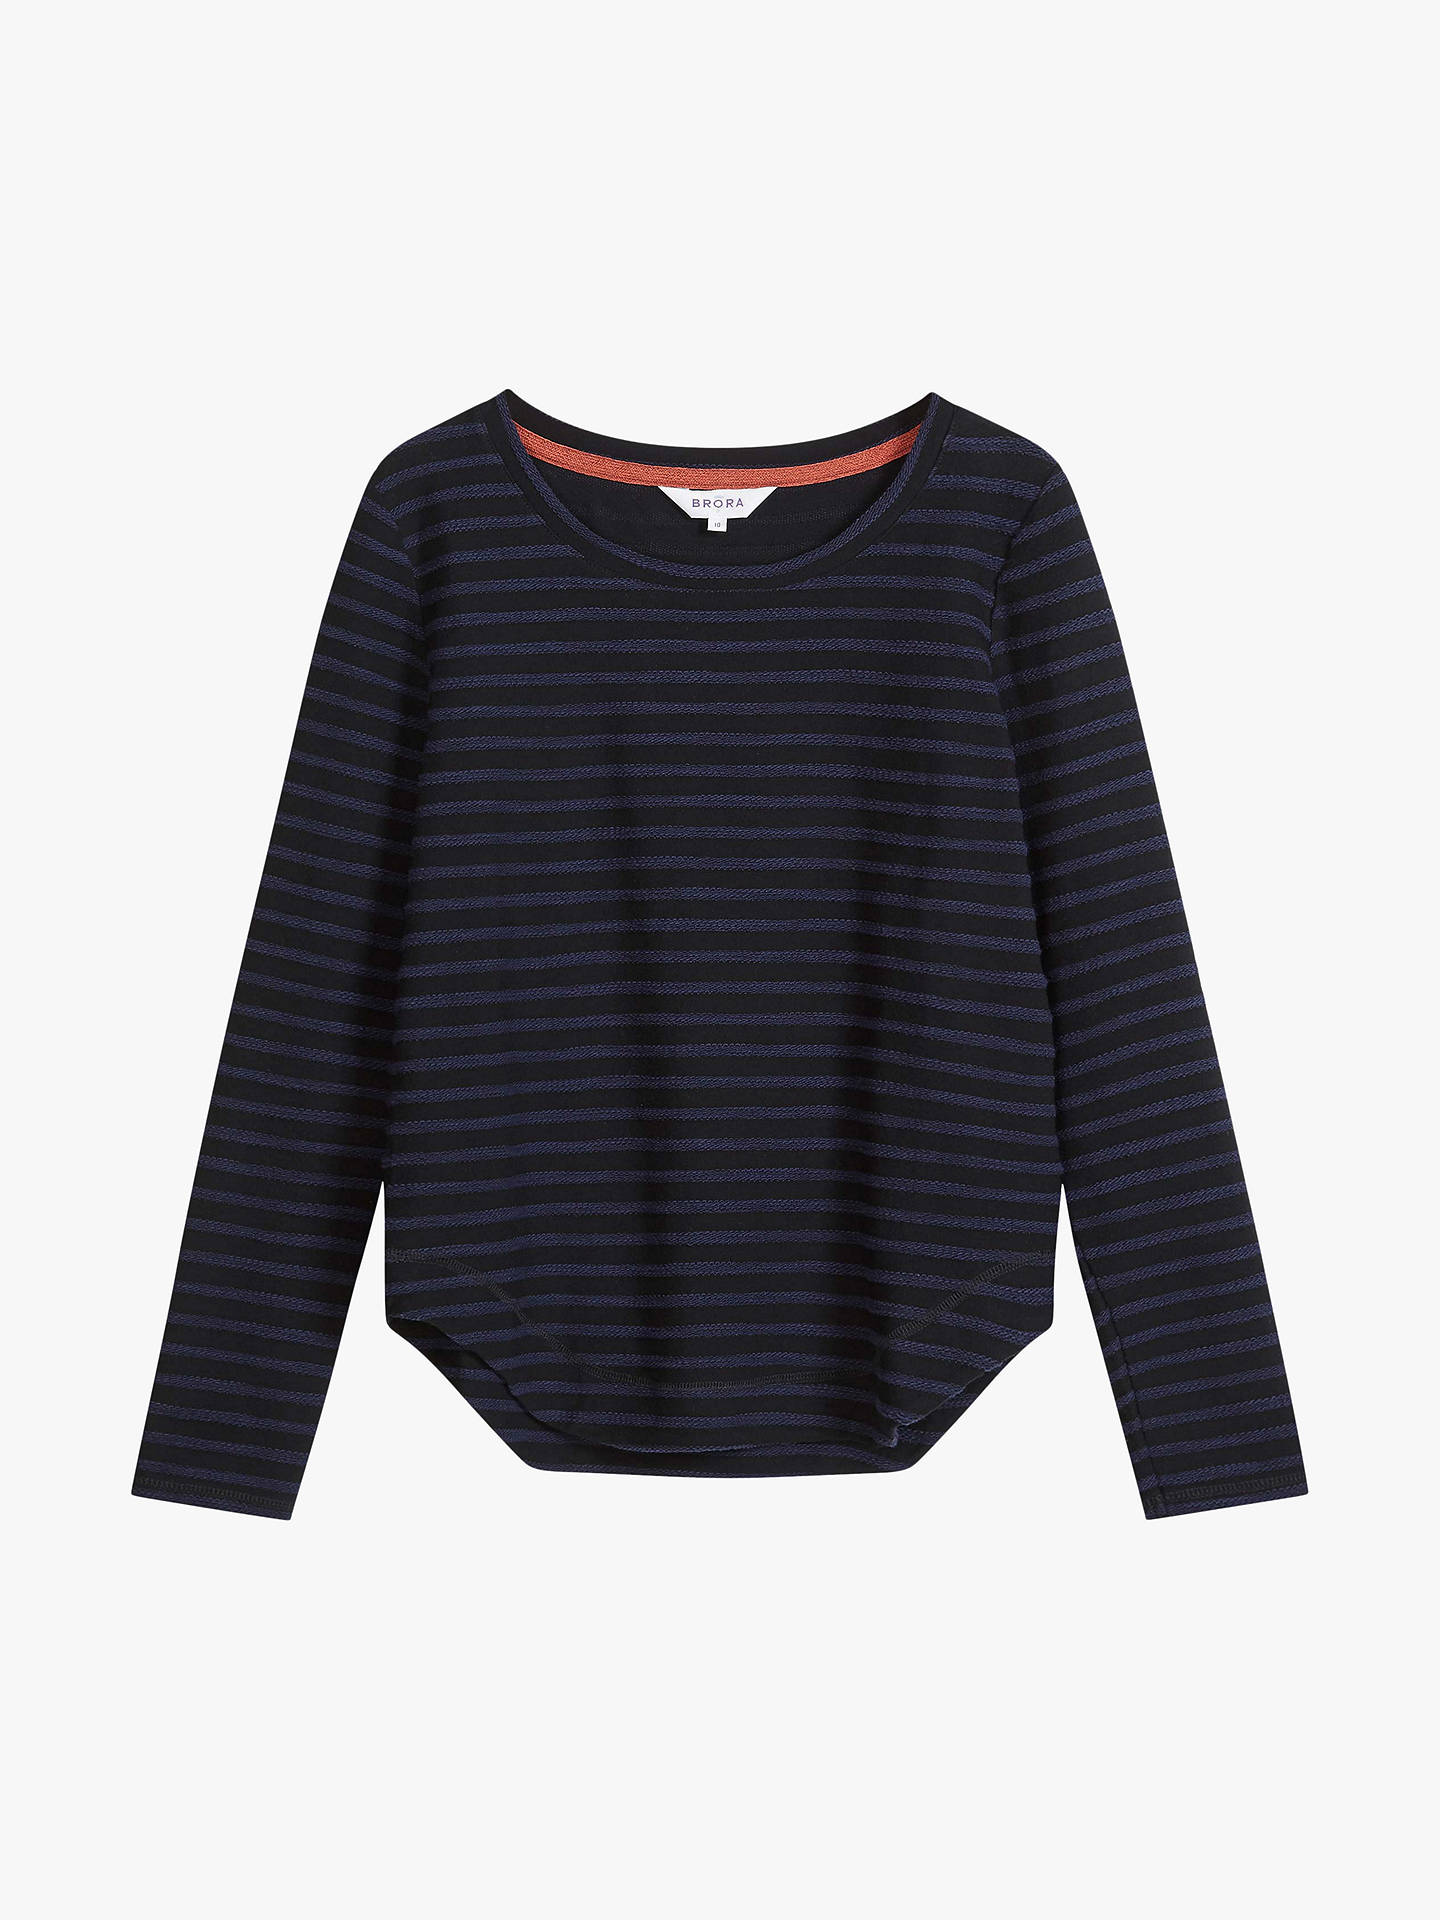 Buy Brora Textured Stripe Top, Black and Navy, 8-10 Online at johnlewis.com